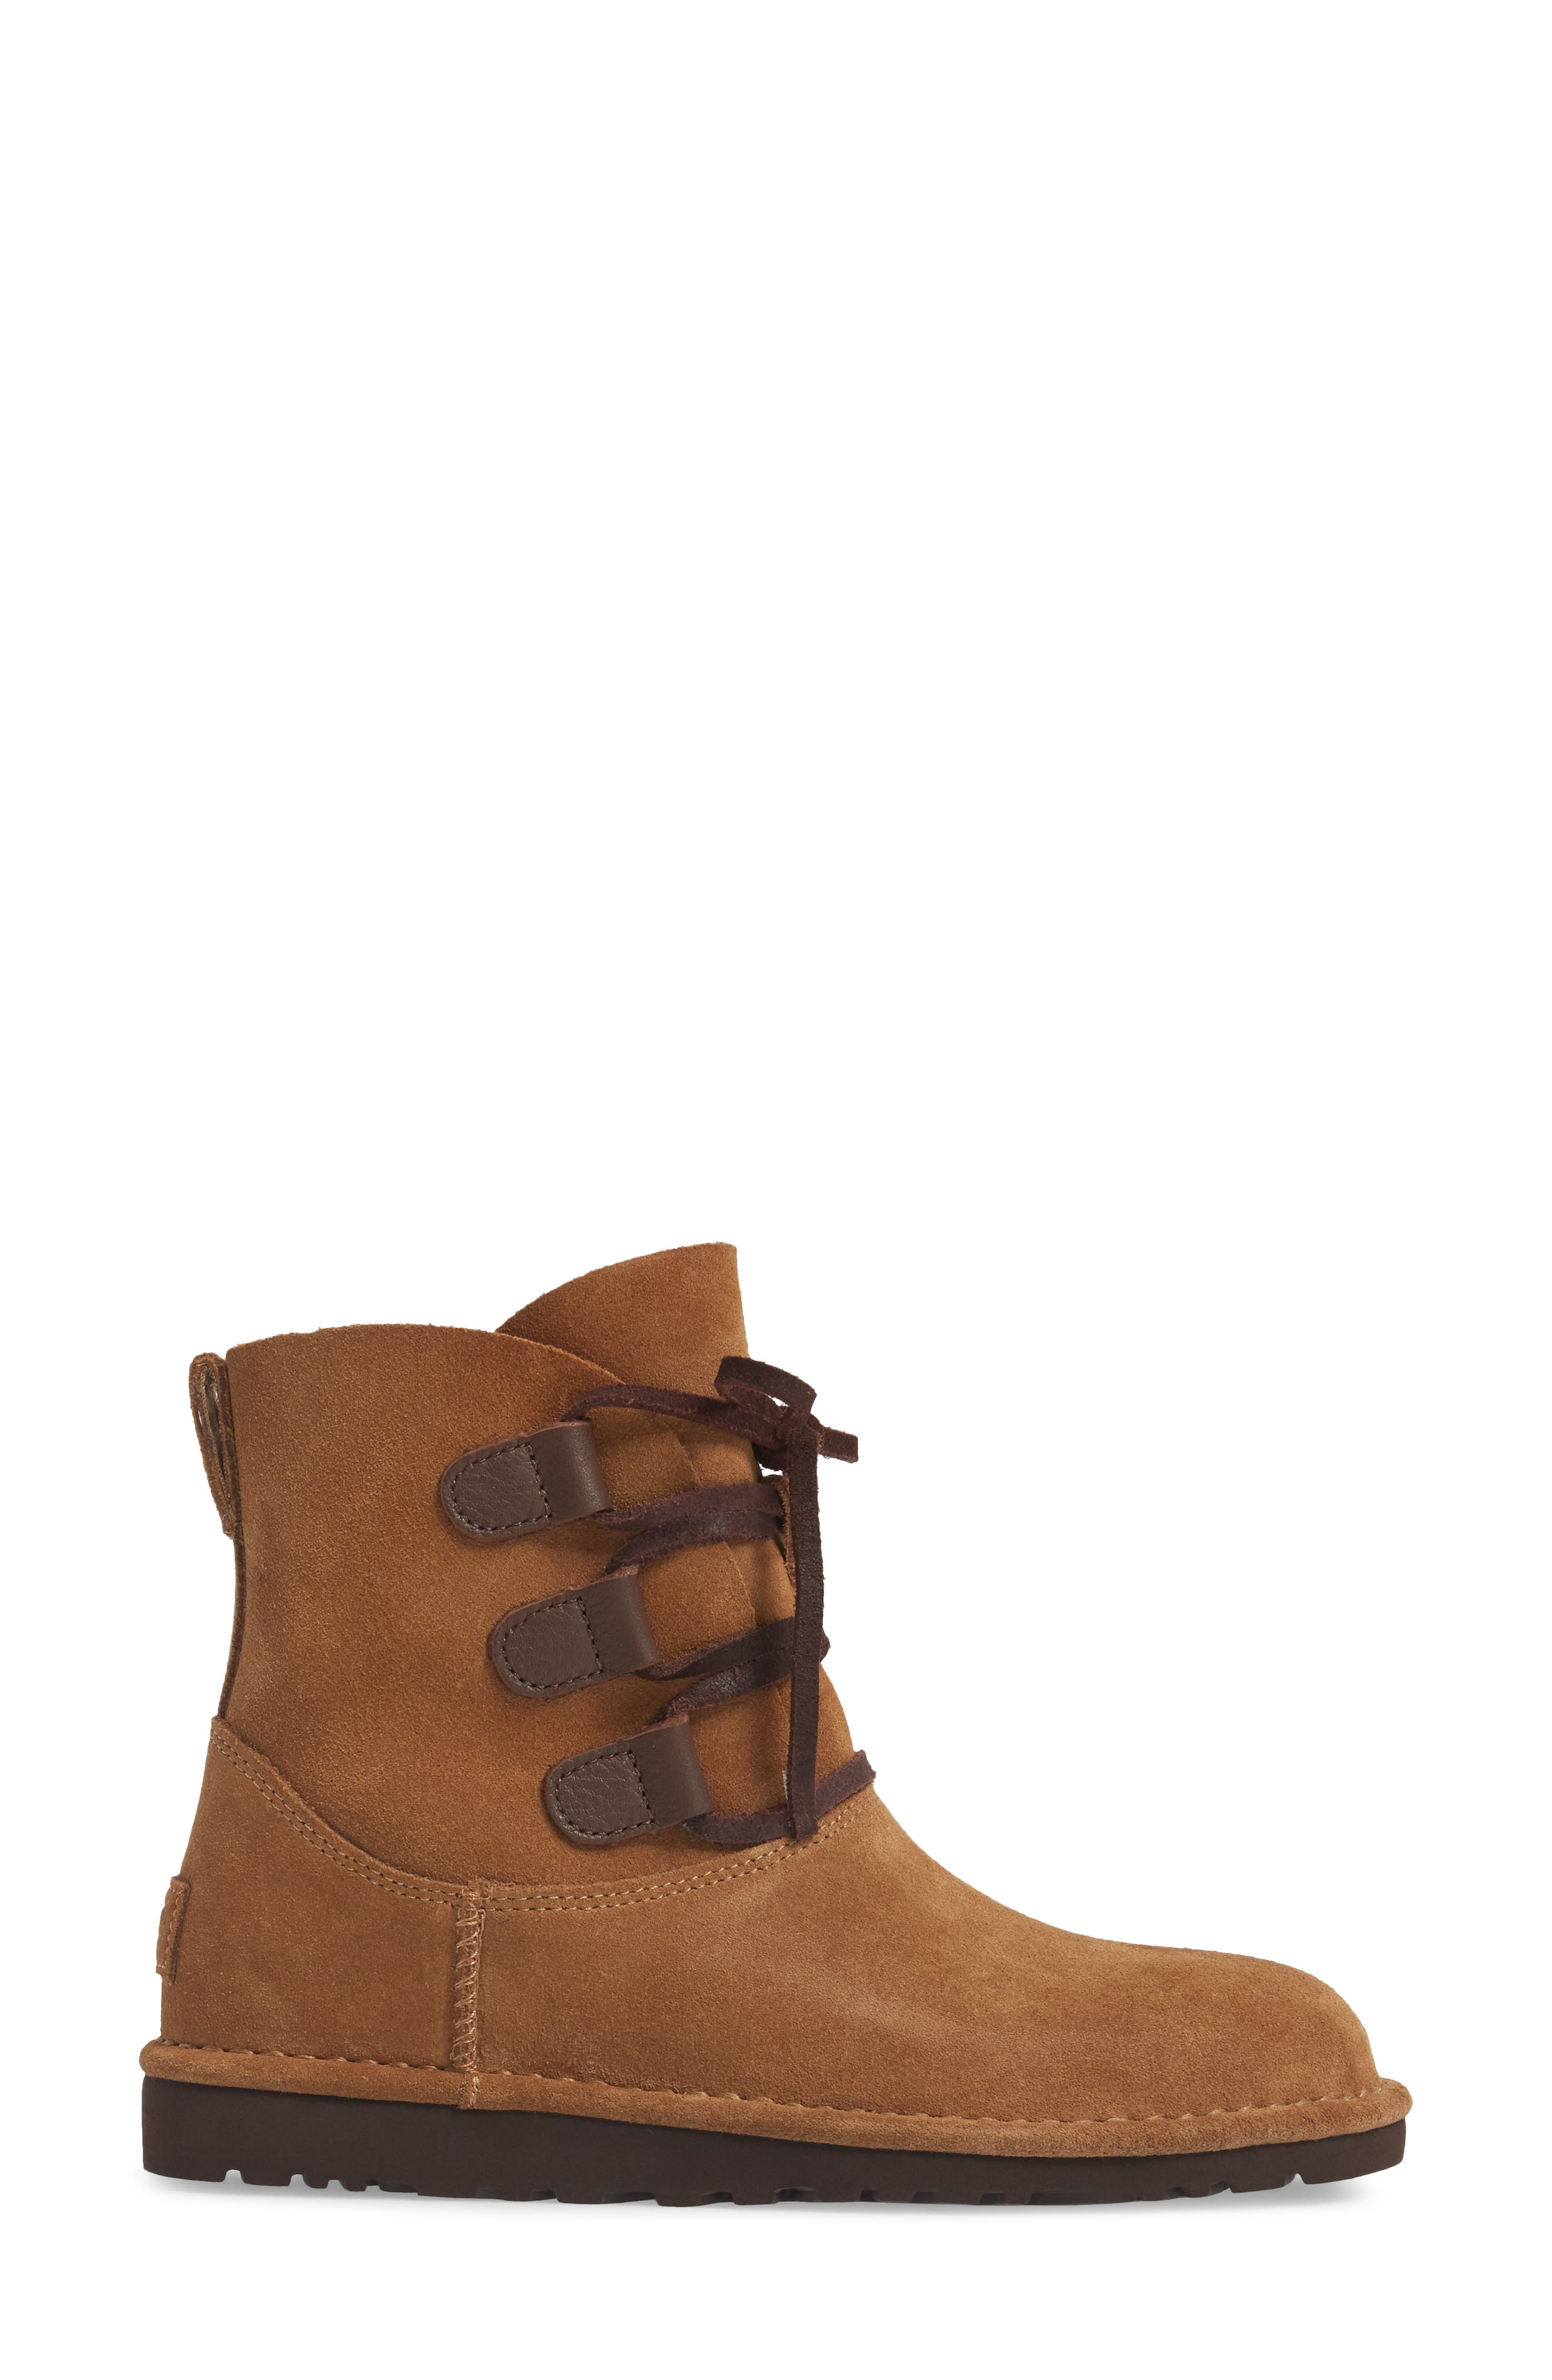 Elvi Short Boot,                             Alternate thumbnail 8, color,